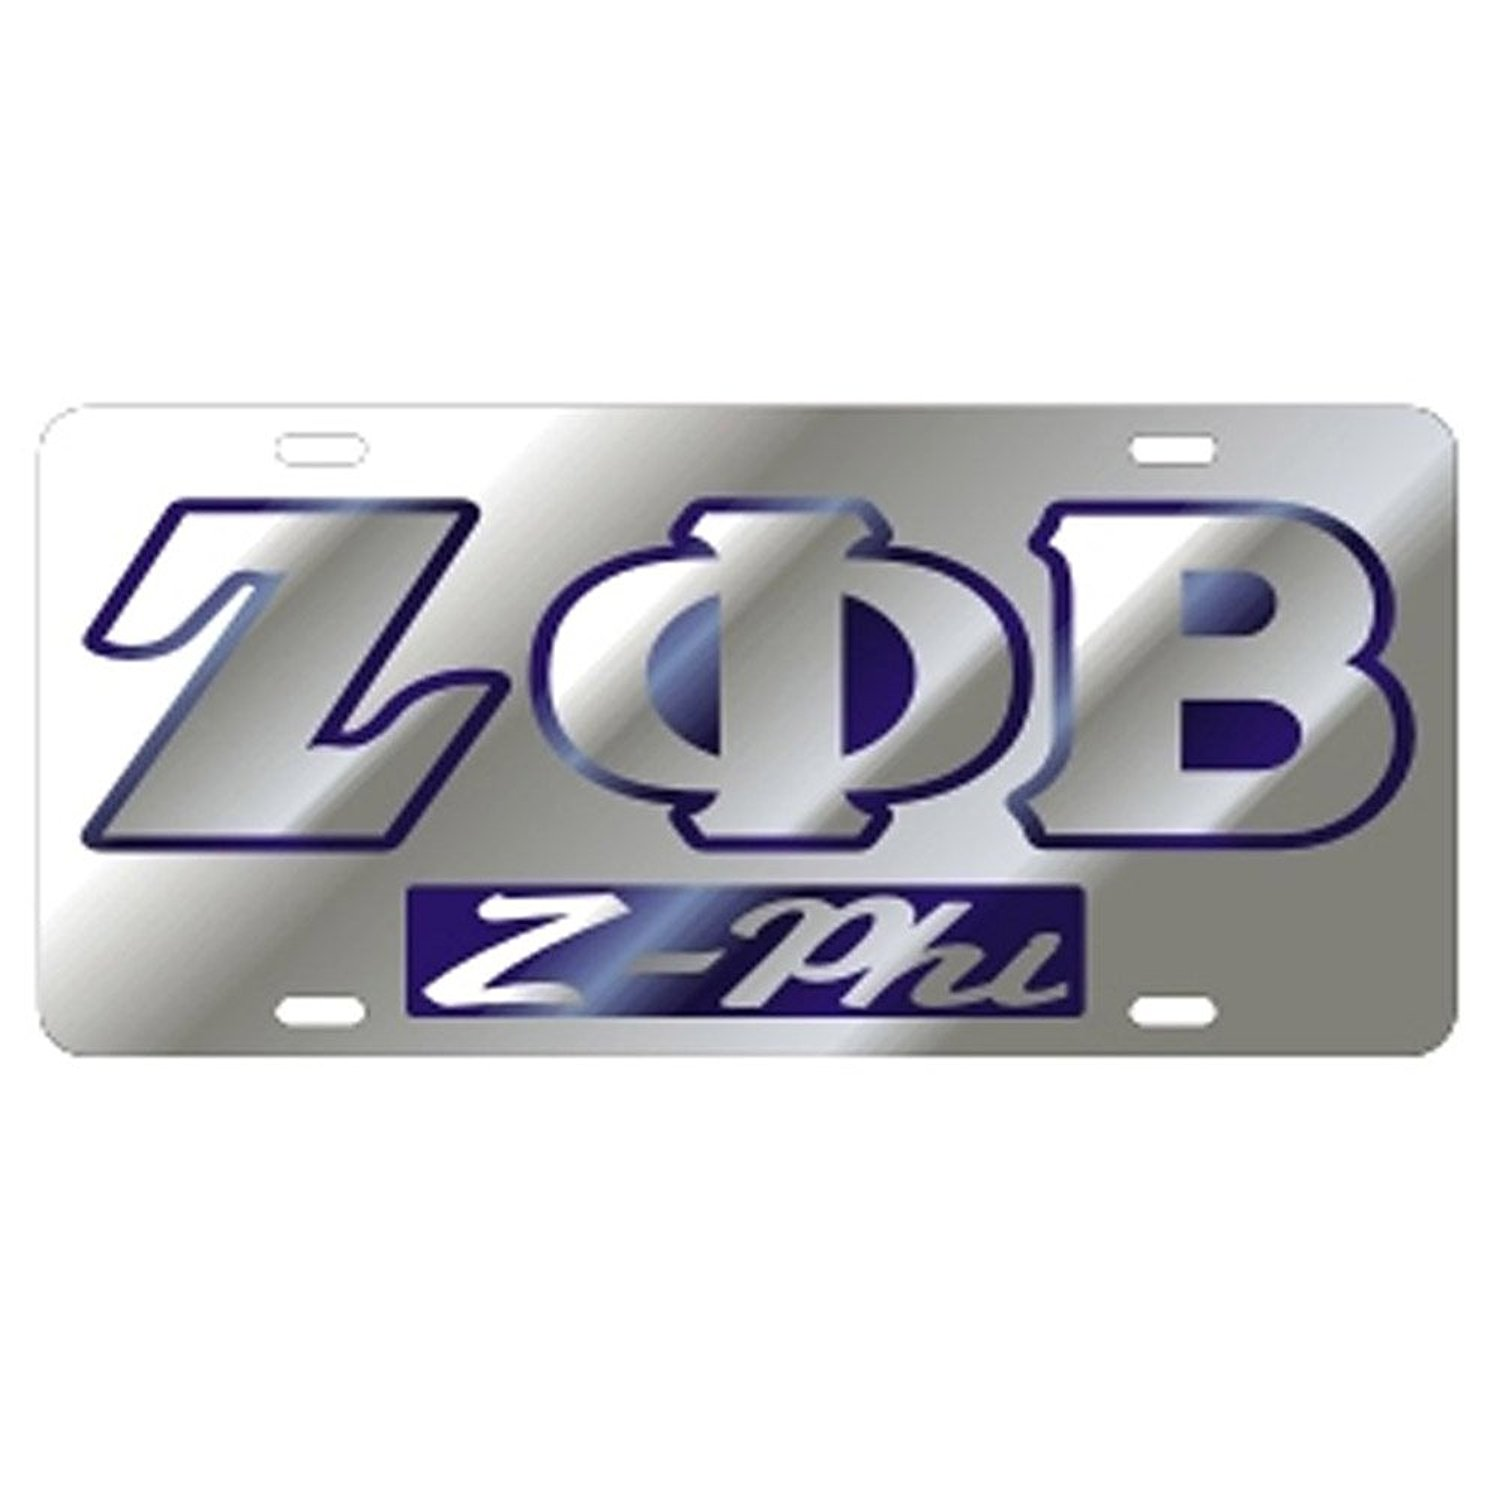 Cheap Zeta Phi Beta, find Zeta Phi Beta deals on line at Alibaba.com